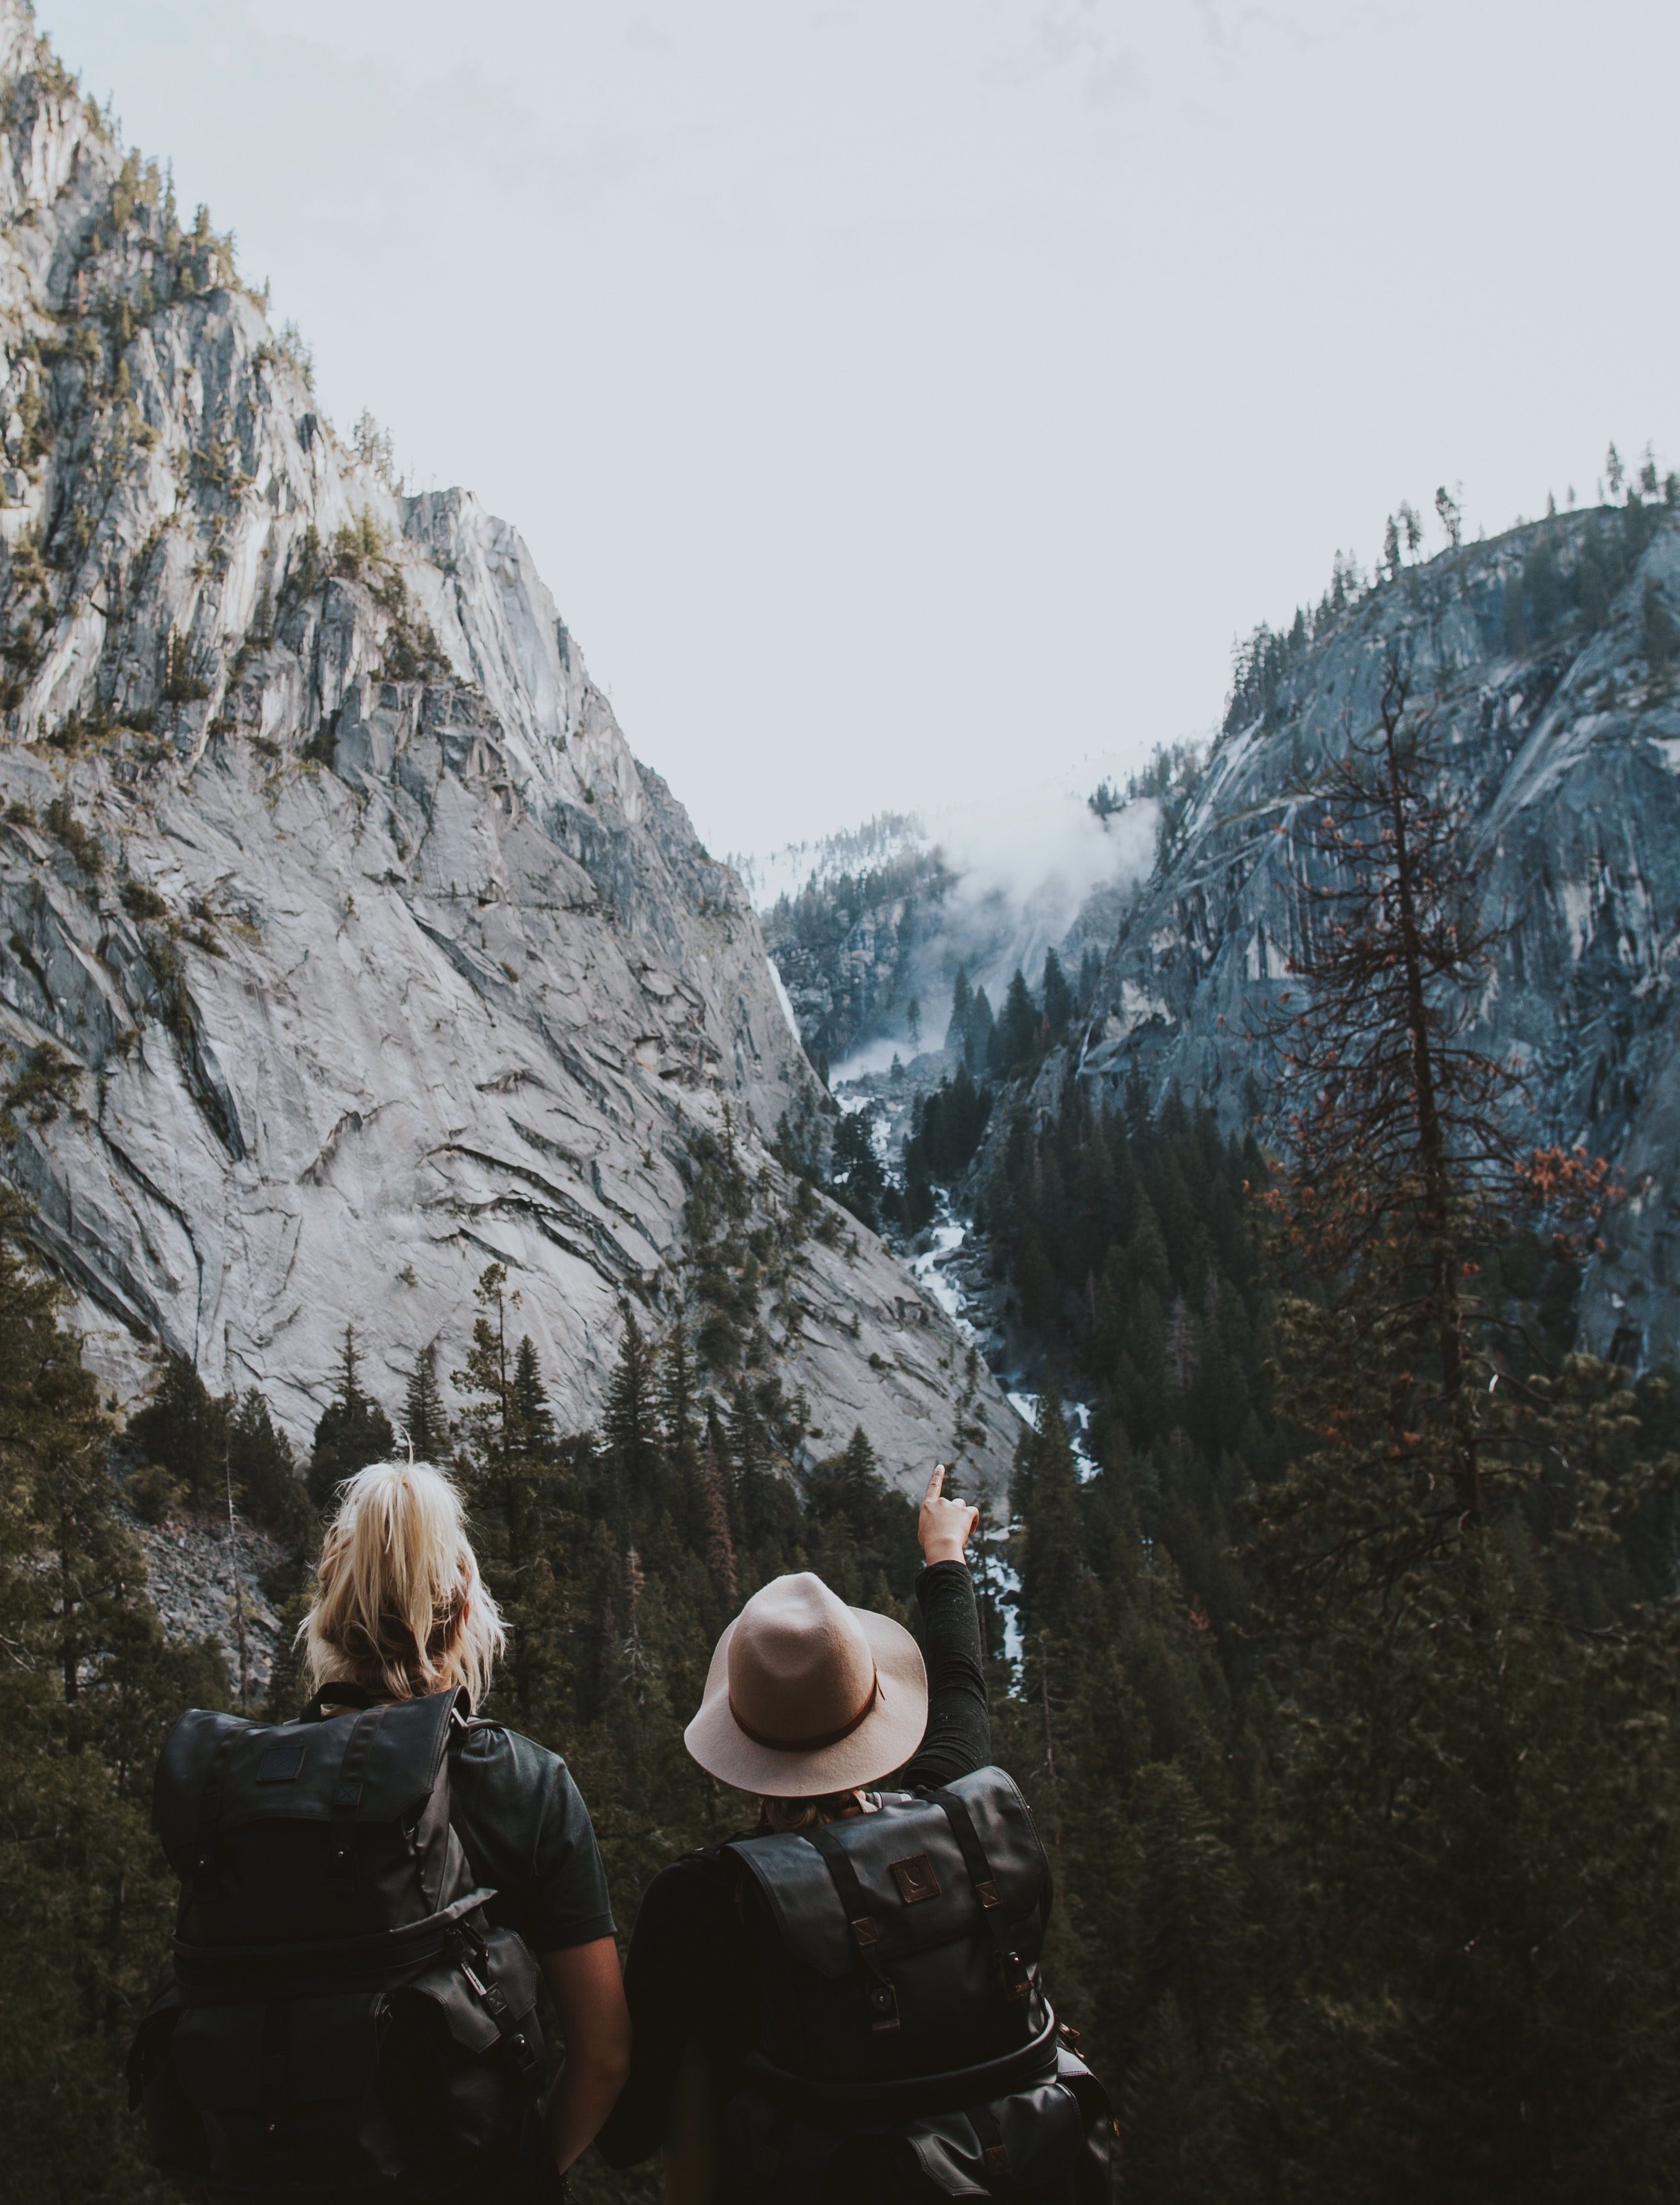 Two women with large backpacks in a mountain pass in Yosemite